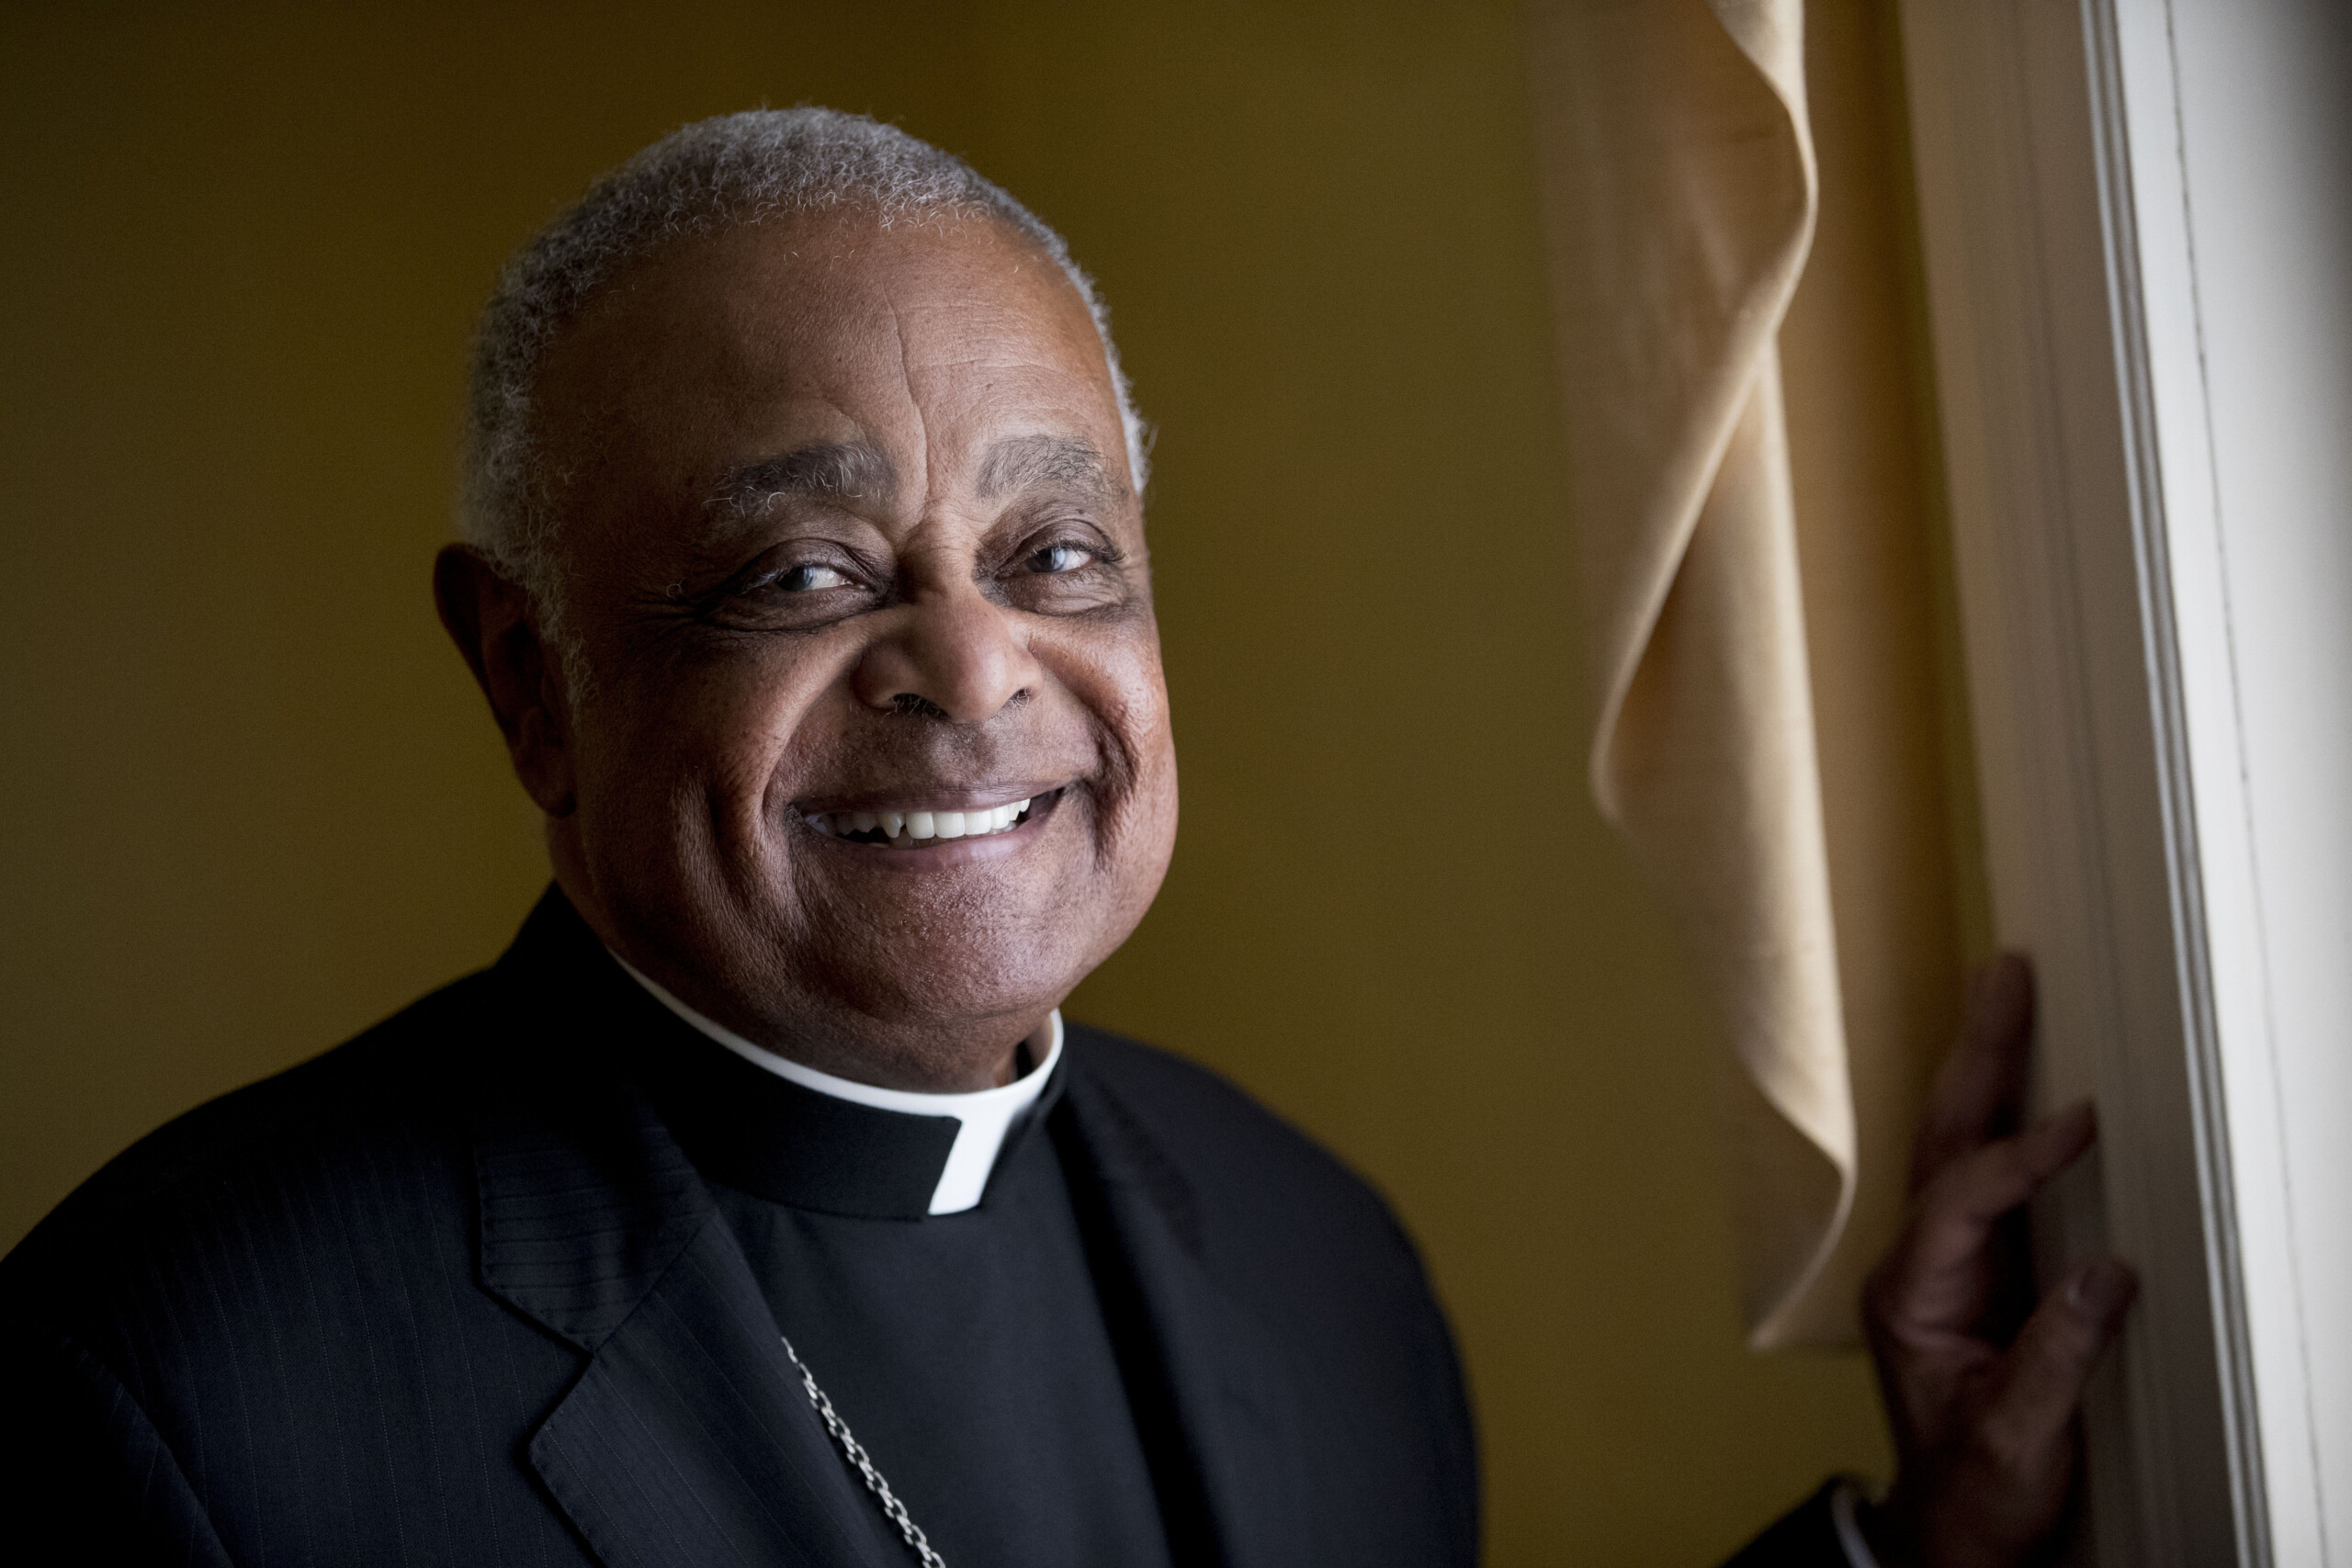 Pope Francis appoints America's first Black cardinal, Wilton Gregory - WISH-TV